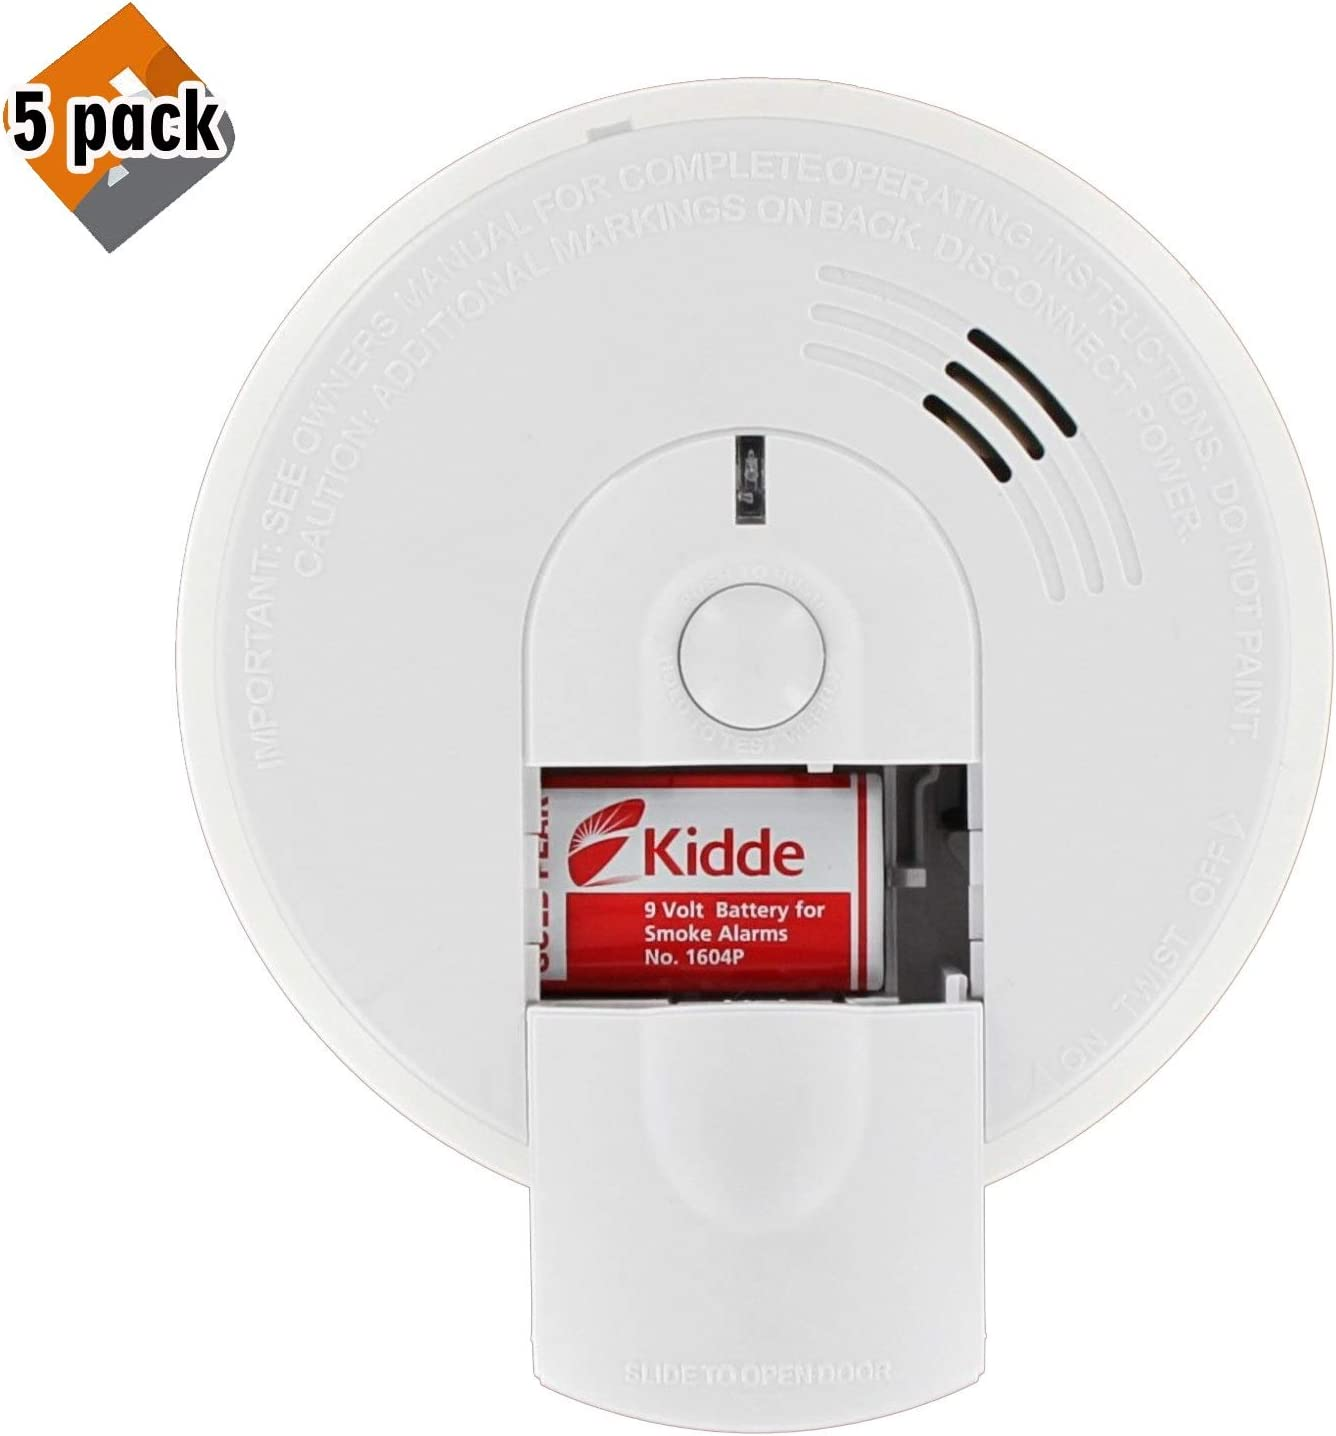 Kidde Firex Hardwire Smoke Detector with 9V Battery Backup and Front Load Battery Door Model I4618AC – 5 Pack